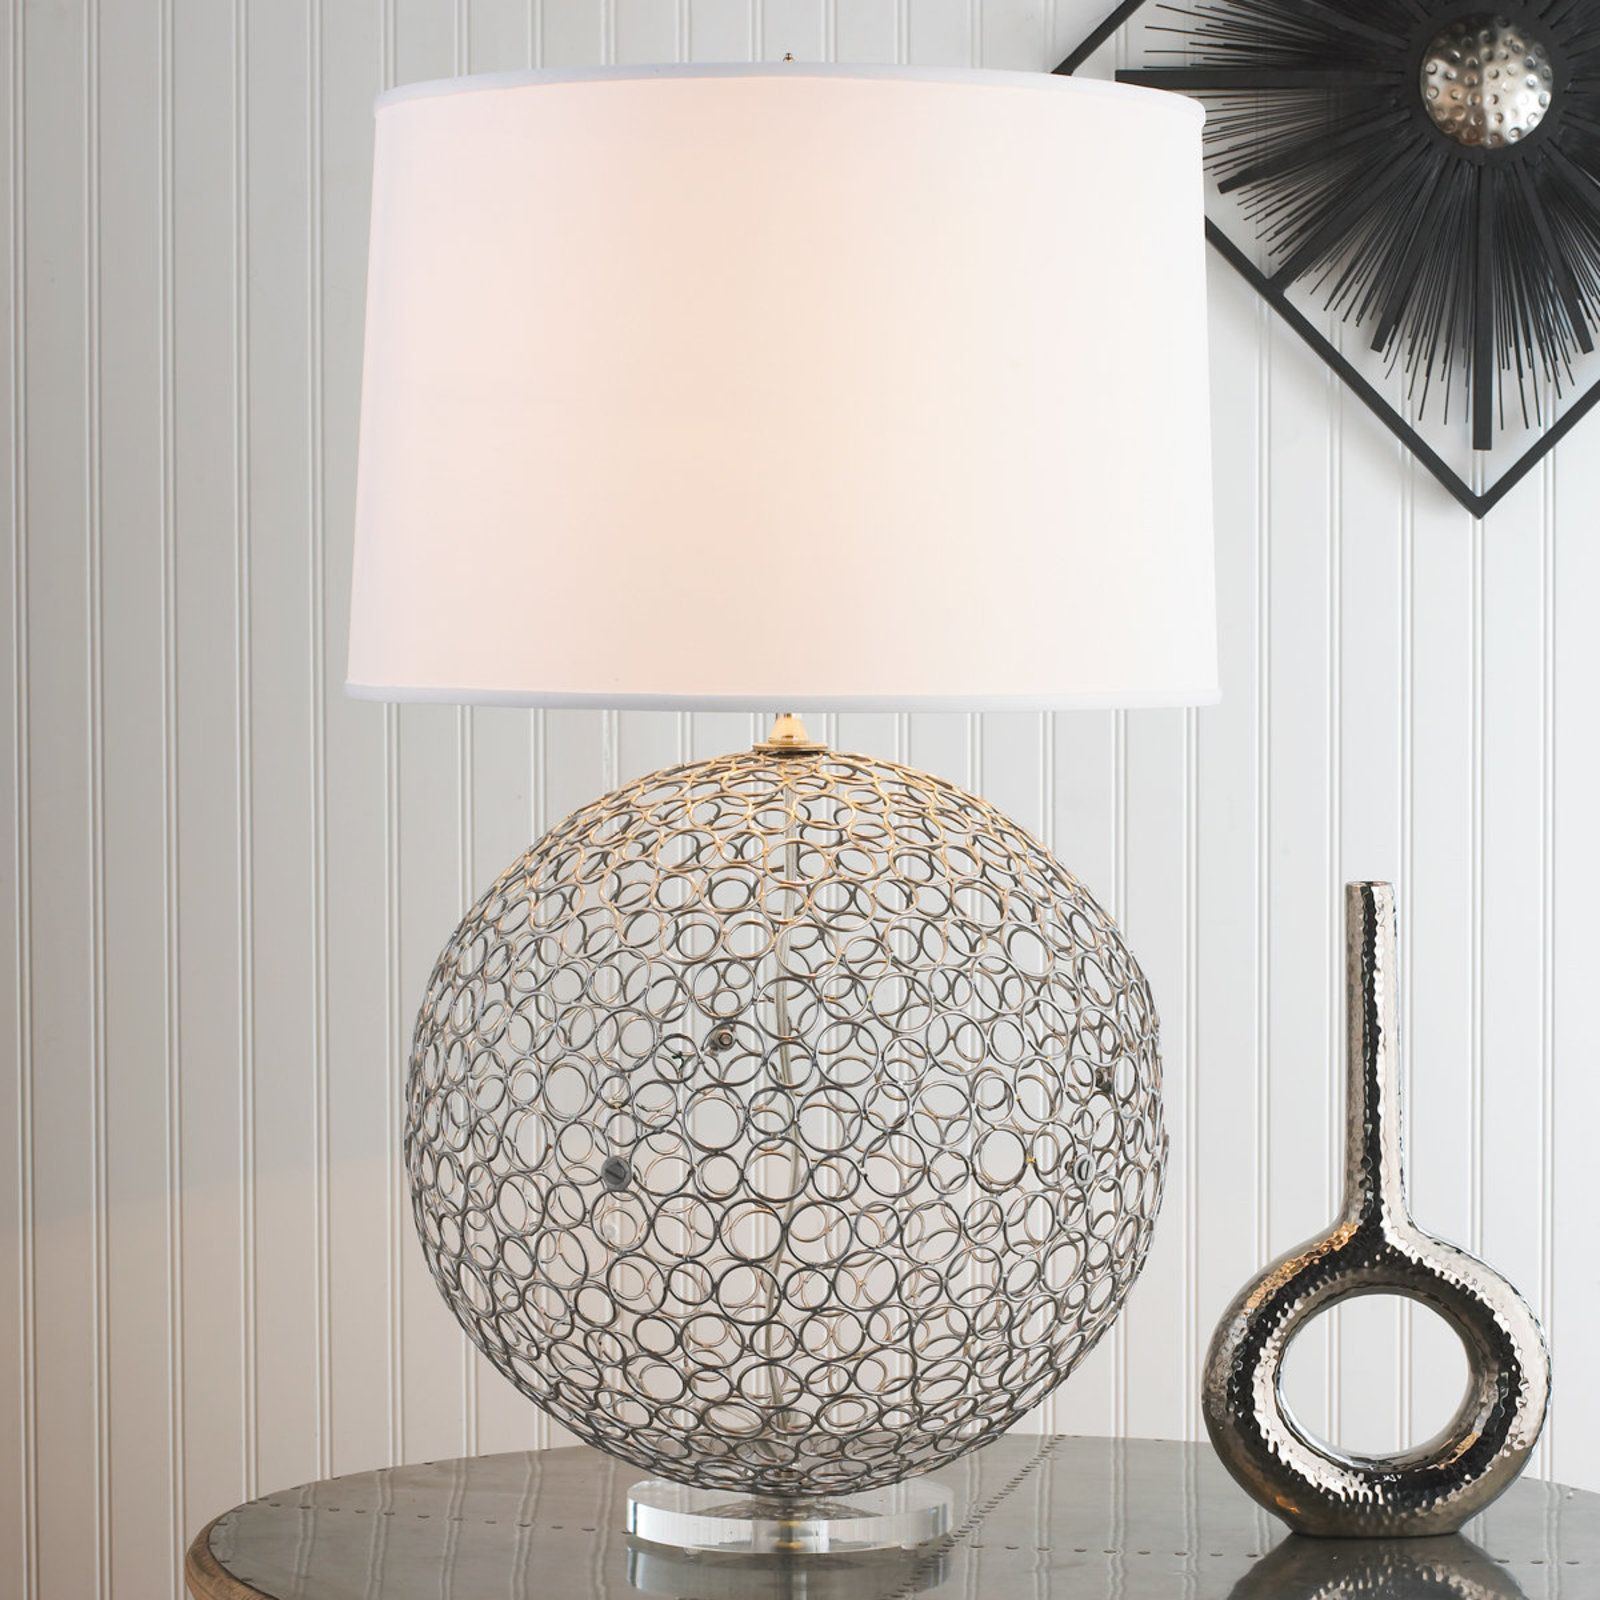 Silver Ringlet Table Lamp Table Lamp Design Lamp Unique Table Lamps